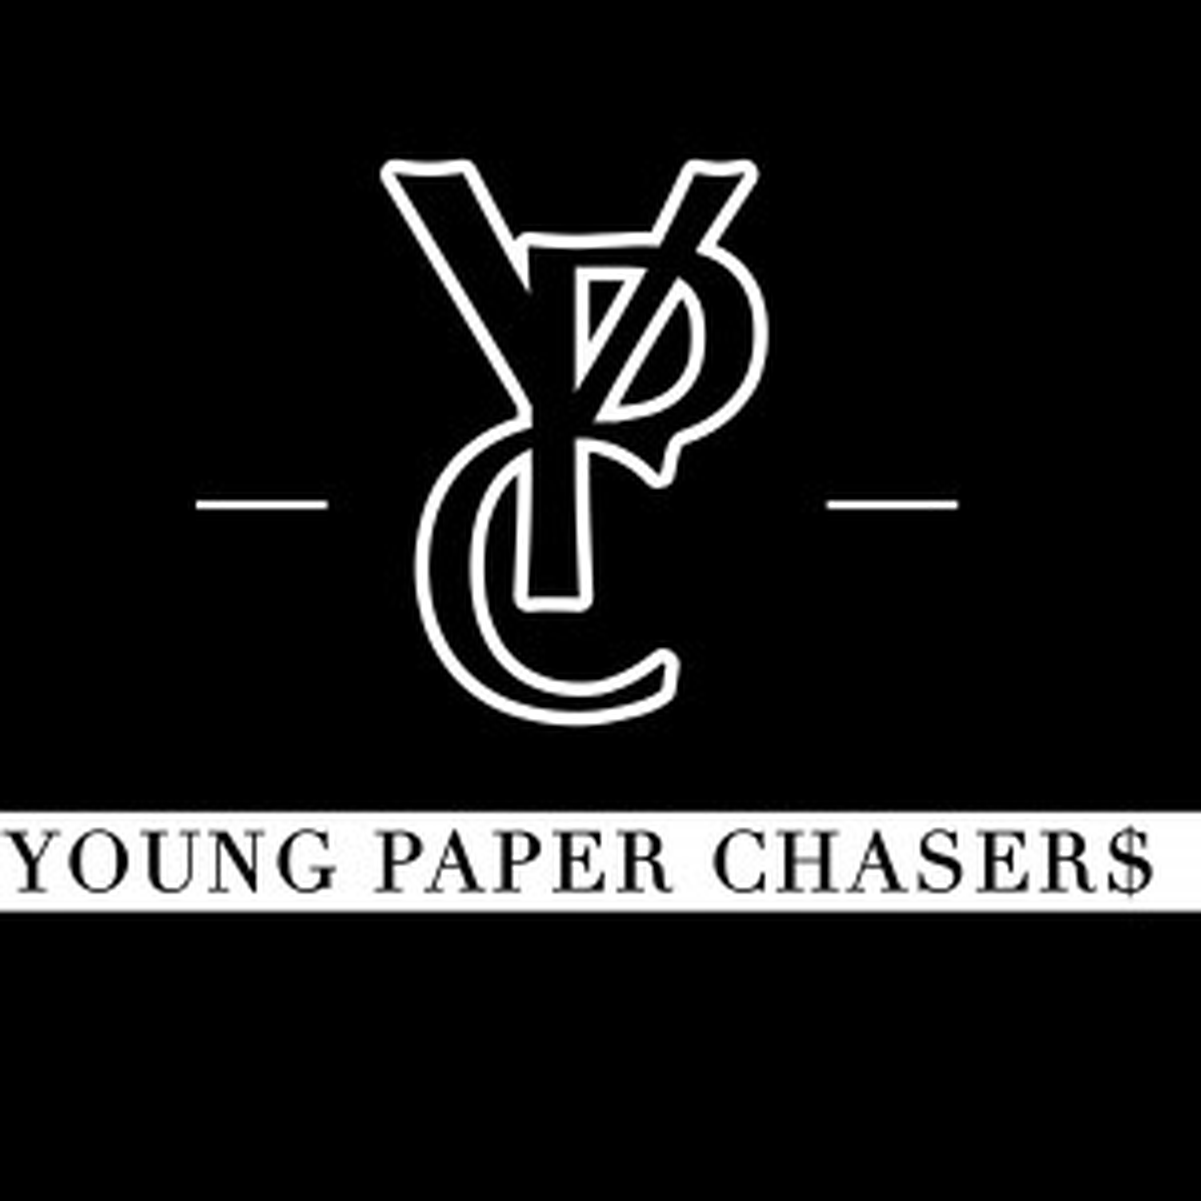 Young Paper Chasers